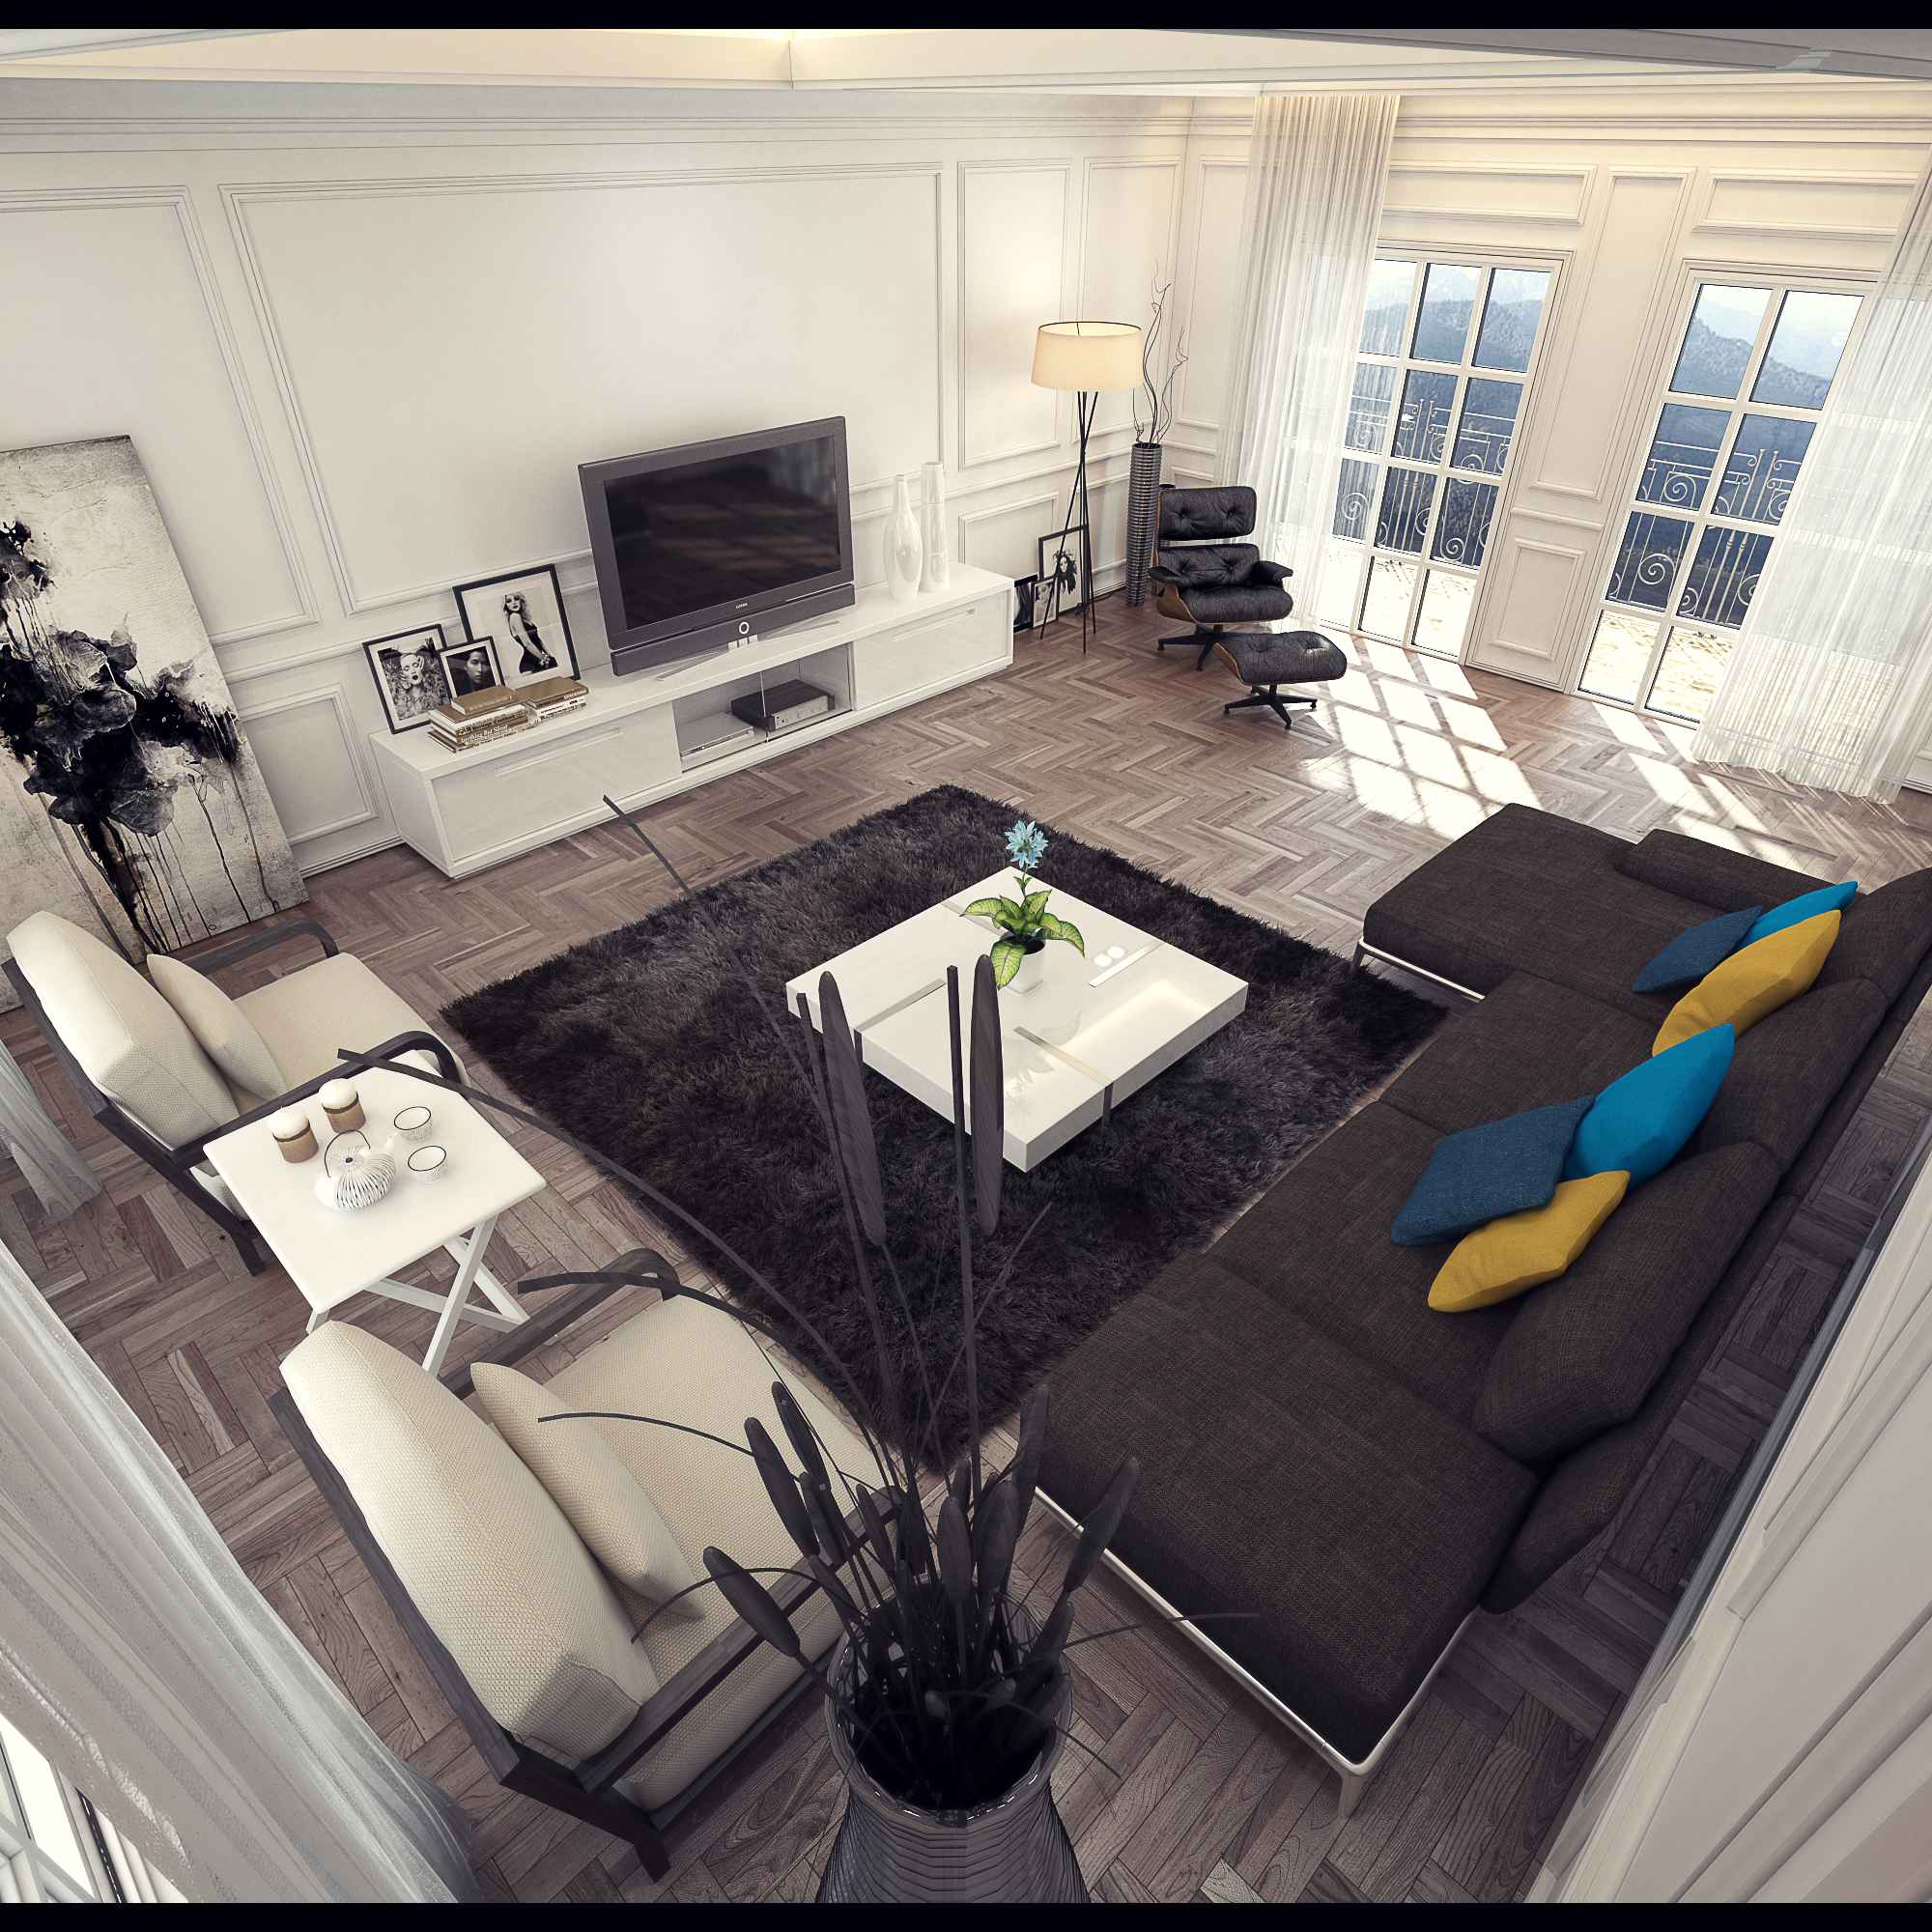 Classical Living Room By Dragon2525 On DeviantArt